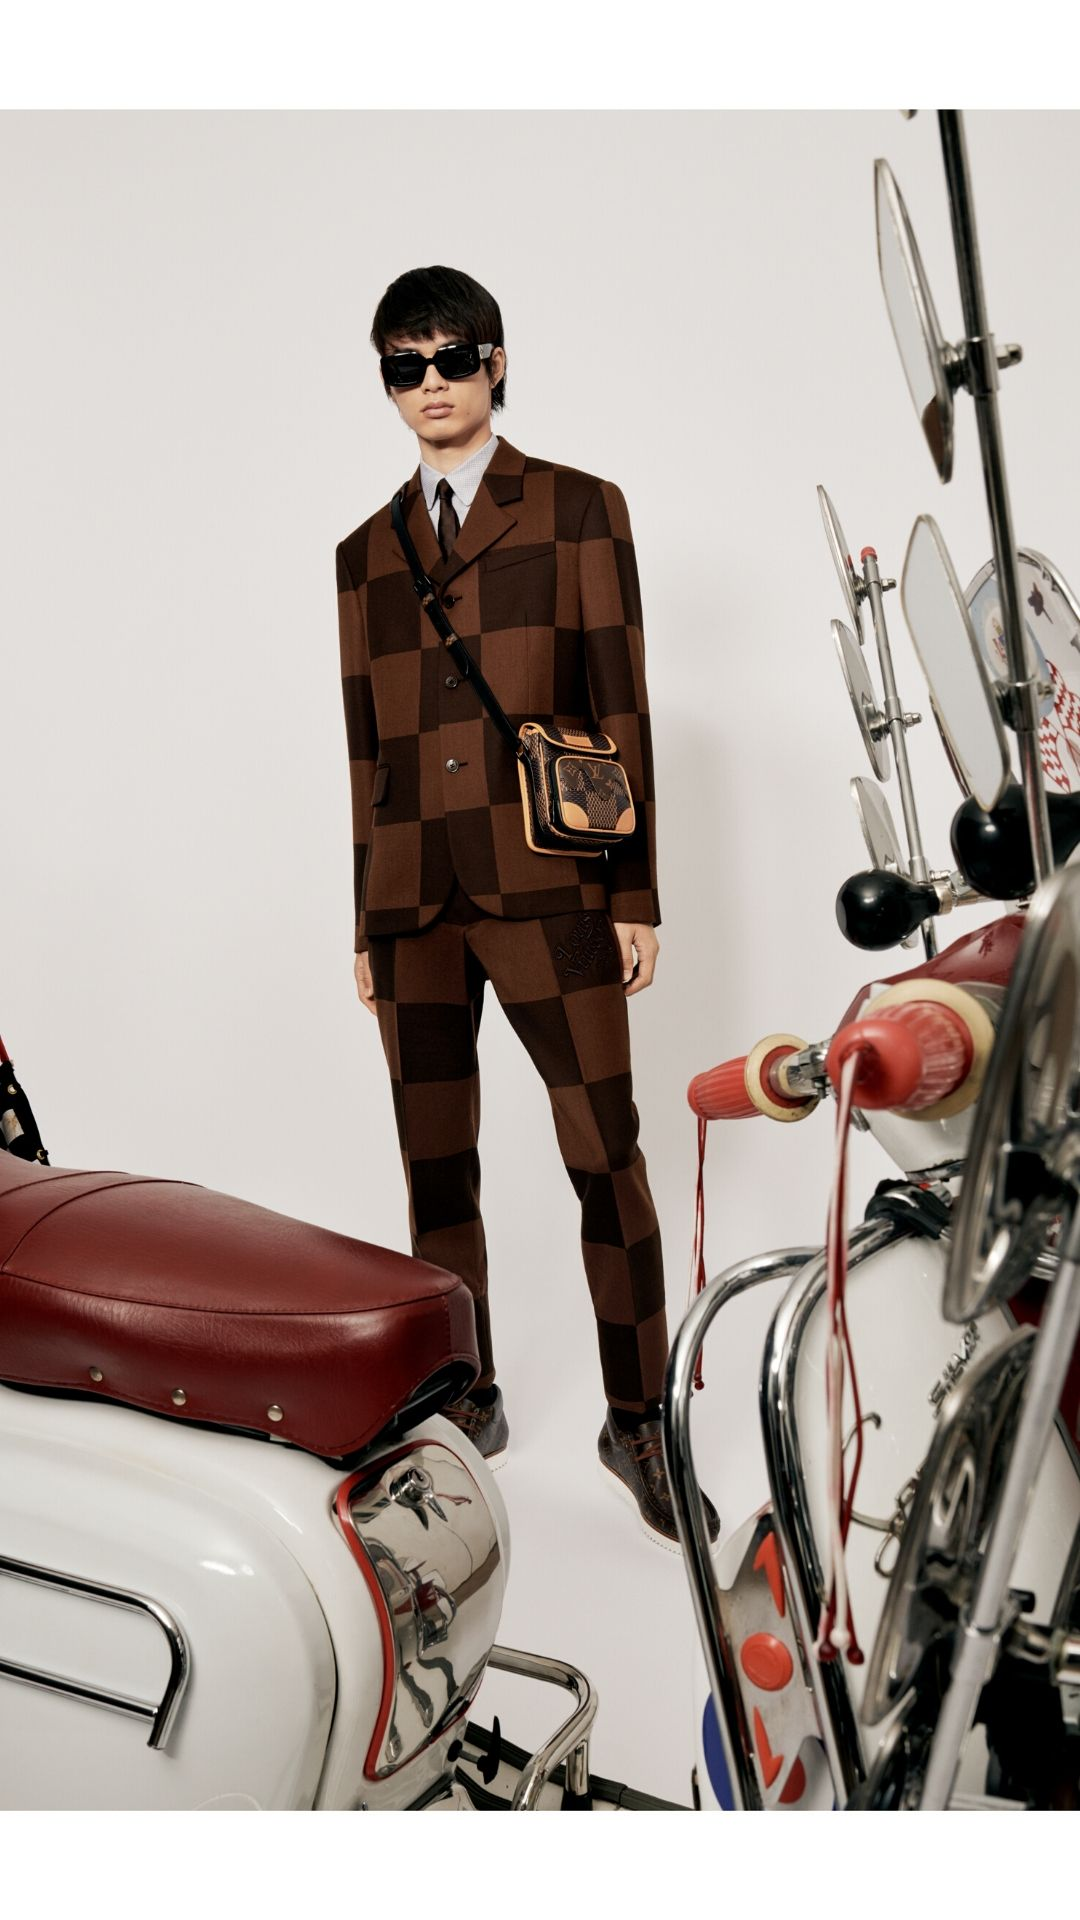 louis vuitton, collection, menswear, campaign, 2020, fashion, esquire